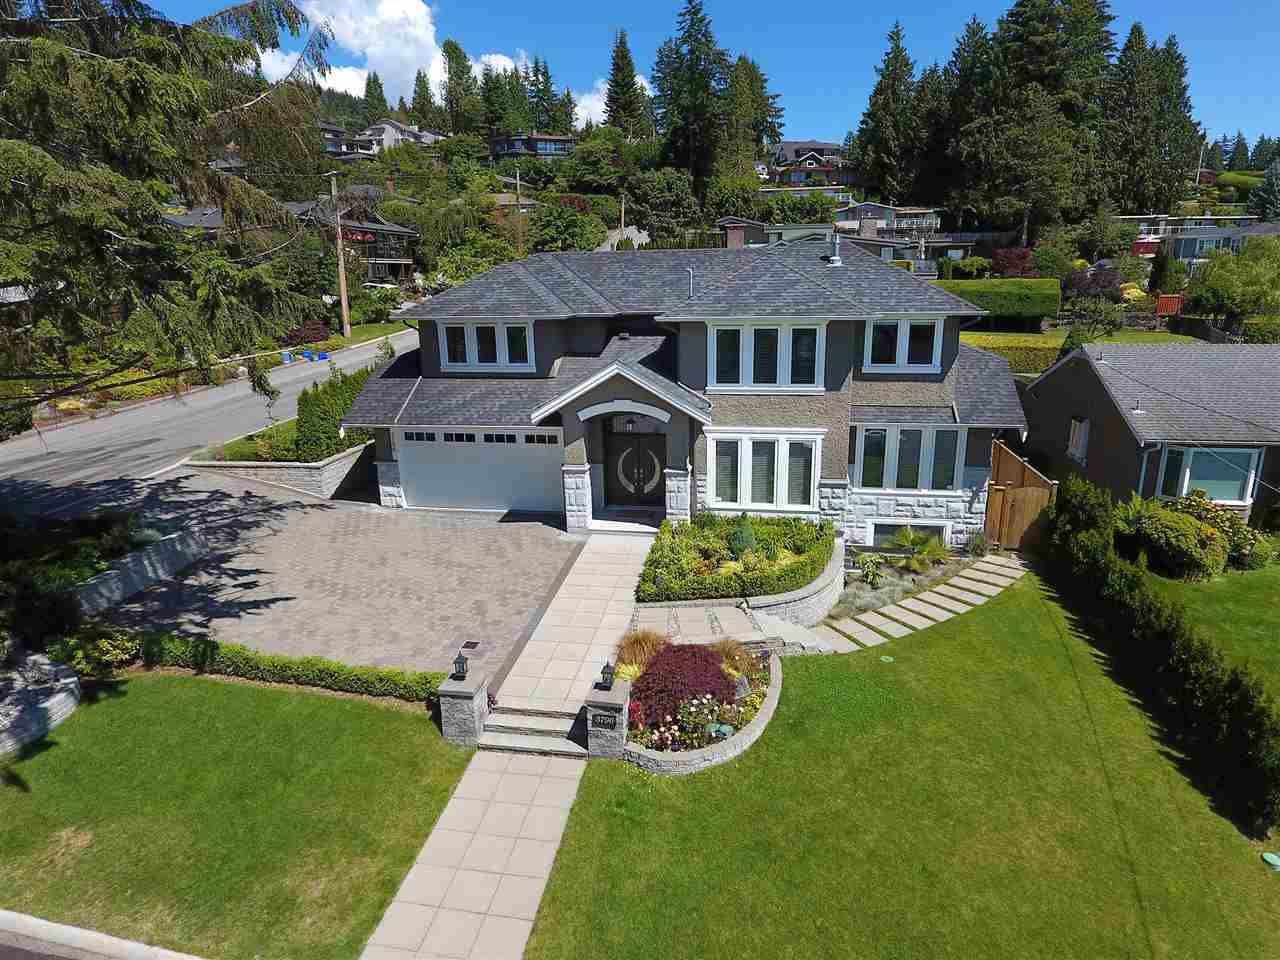 Main Photo: 3796 NORWOOD Avenue in North Vancouver: Upper Lonsdale House for sale : MLS®# R2083548